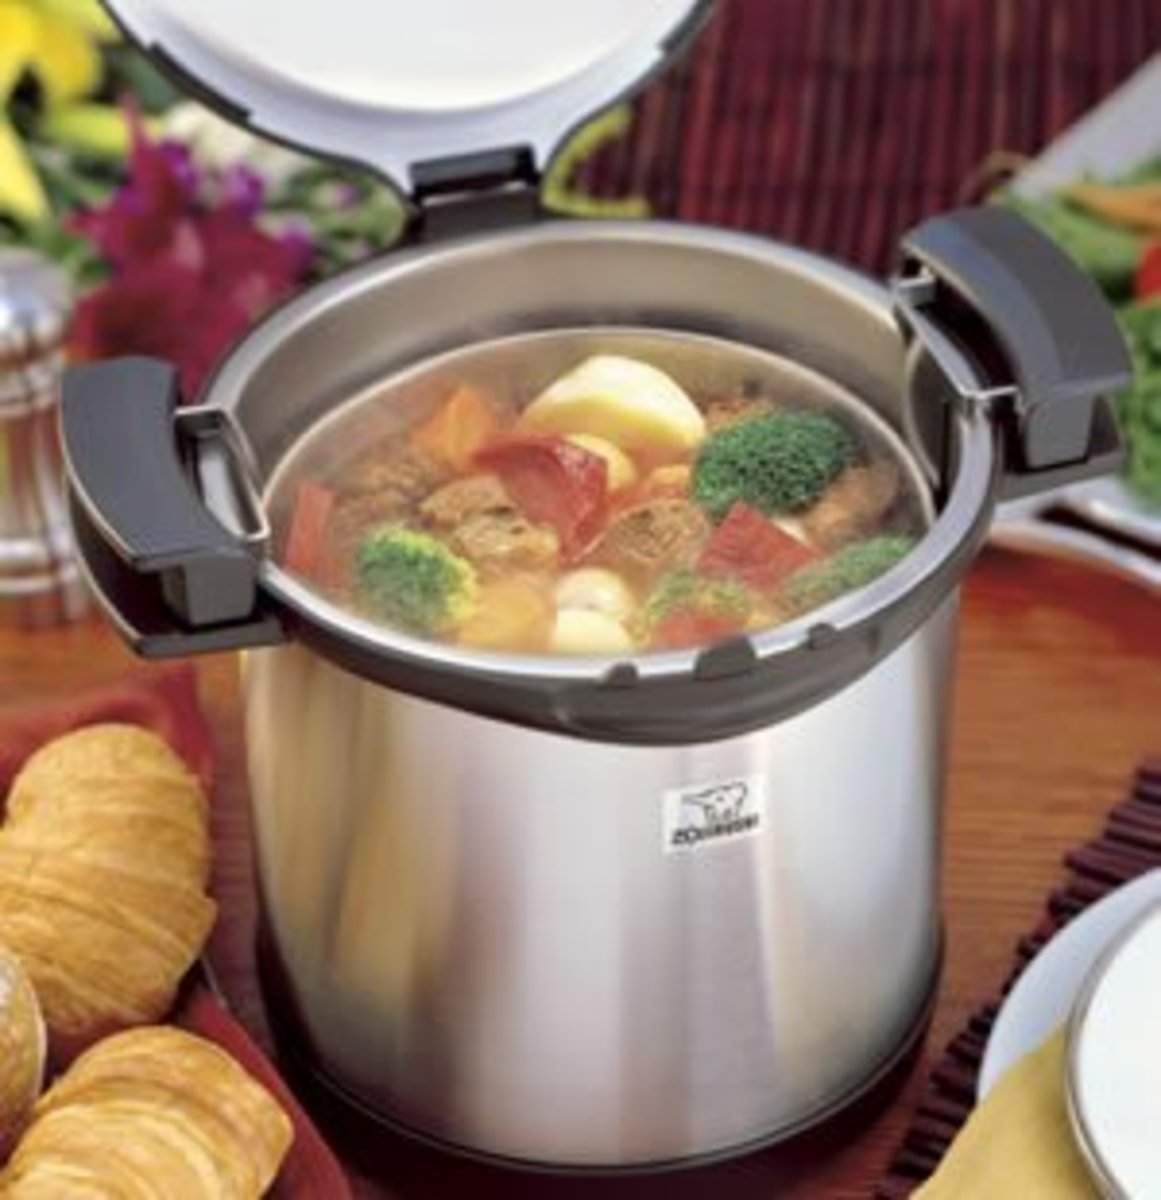 Kitchen Must-Have: The Thermal Cooker